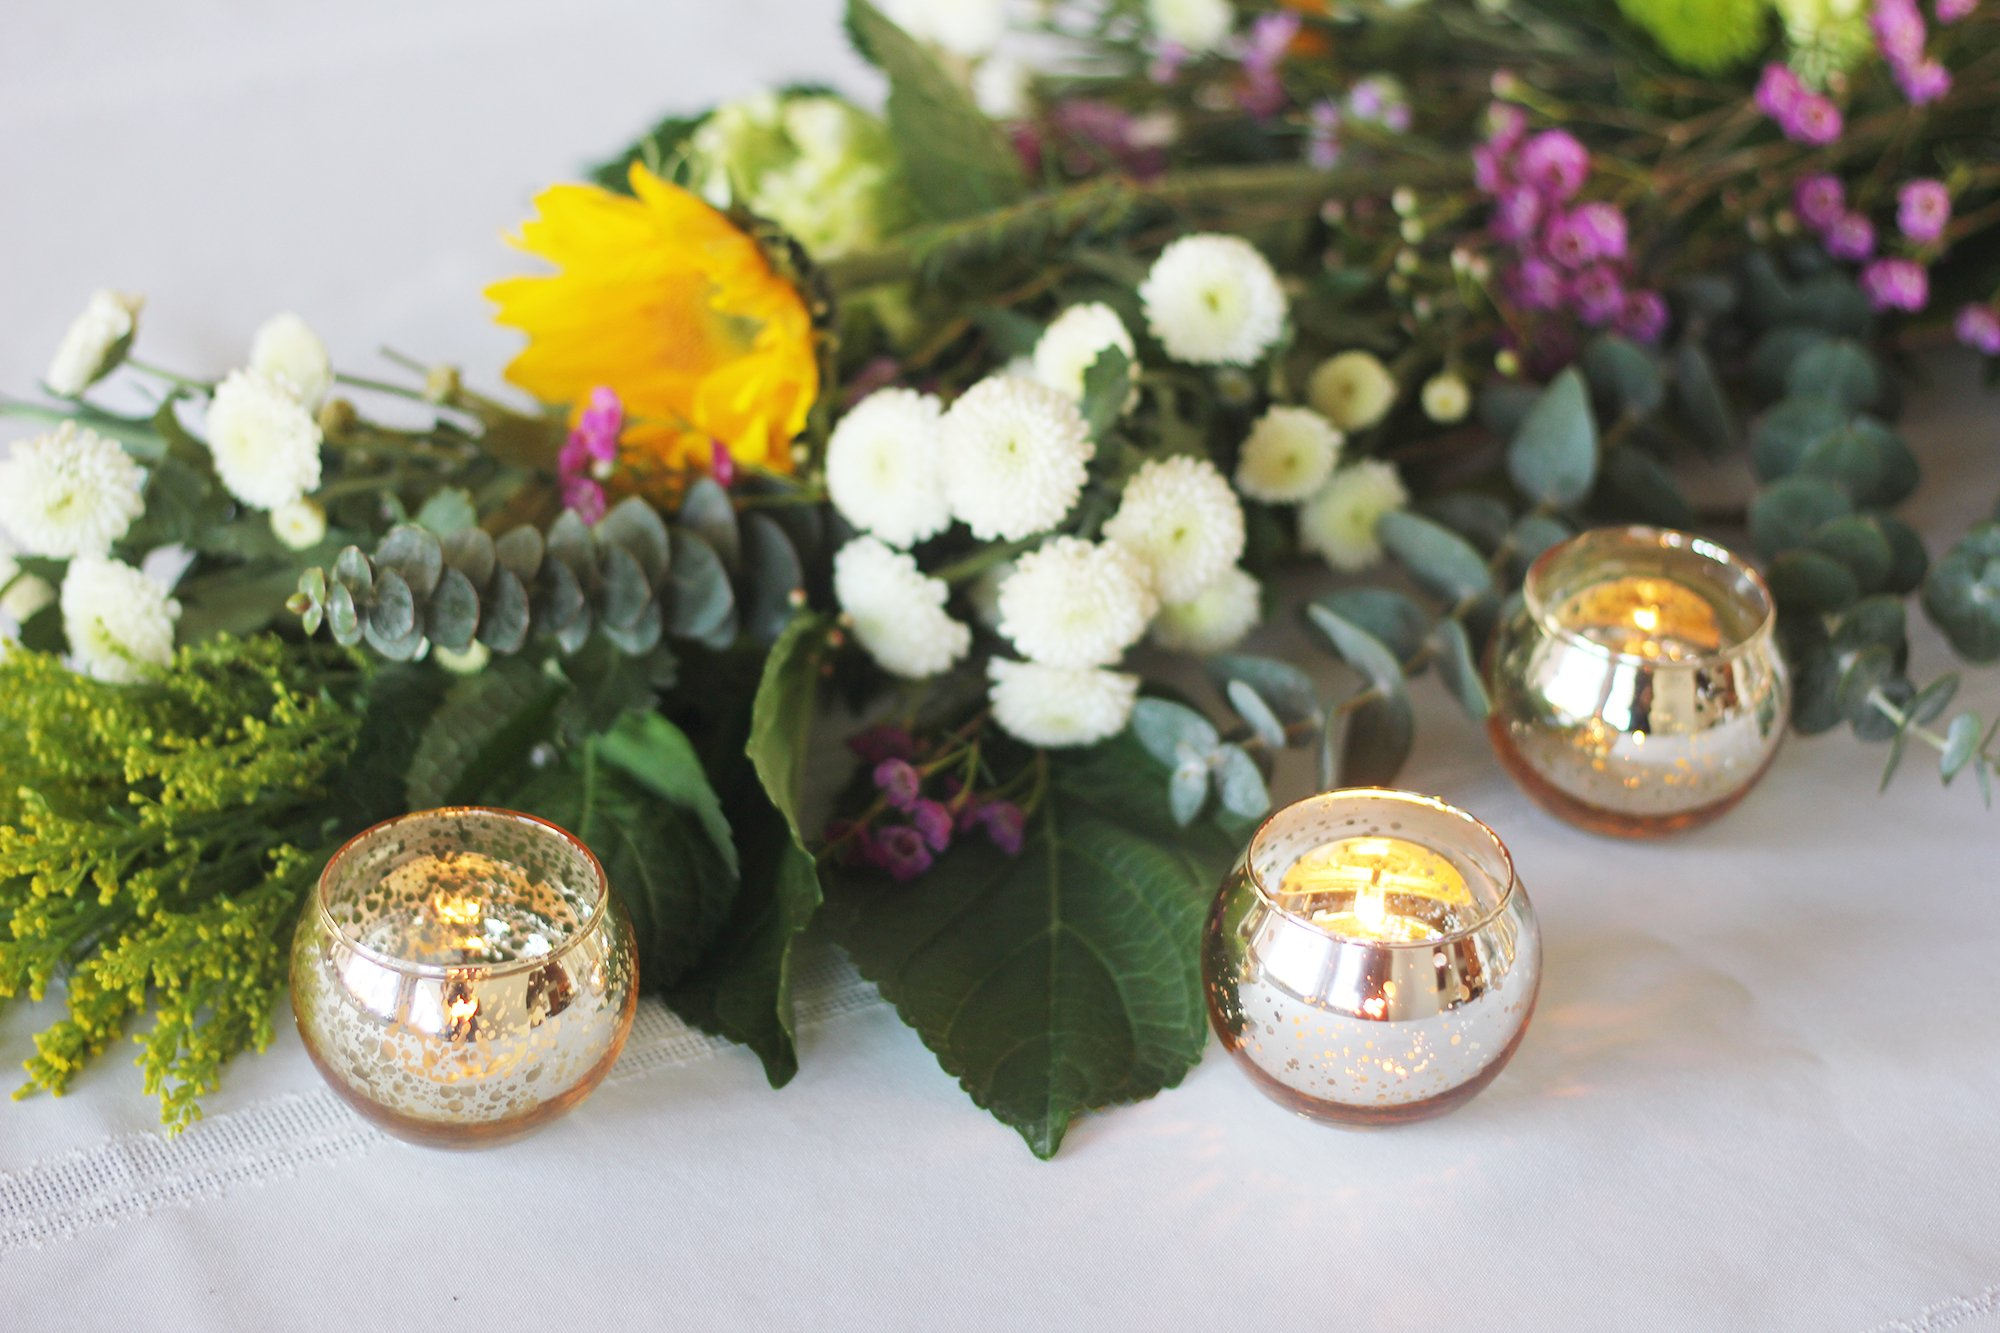 Just Artifacts Round Mercury Glass Votive Candle Holders 2'' H Speckled Gold (Set of 25) - Mercury Glass Votive Candle Holders for Weddings and Home Décor